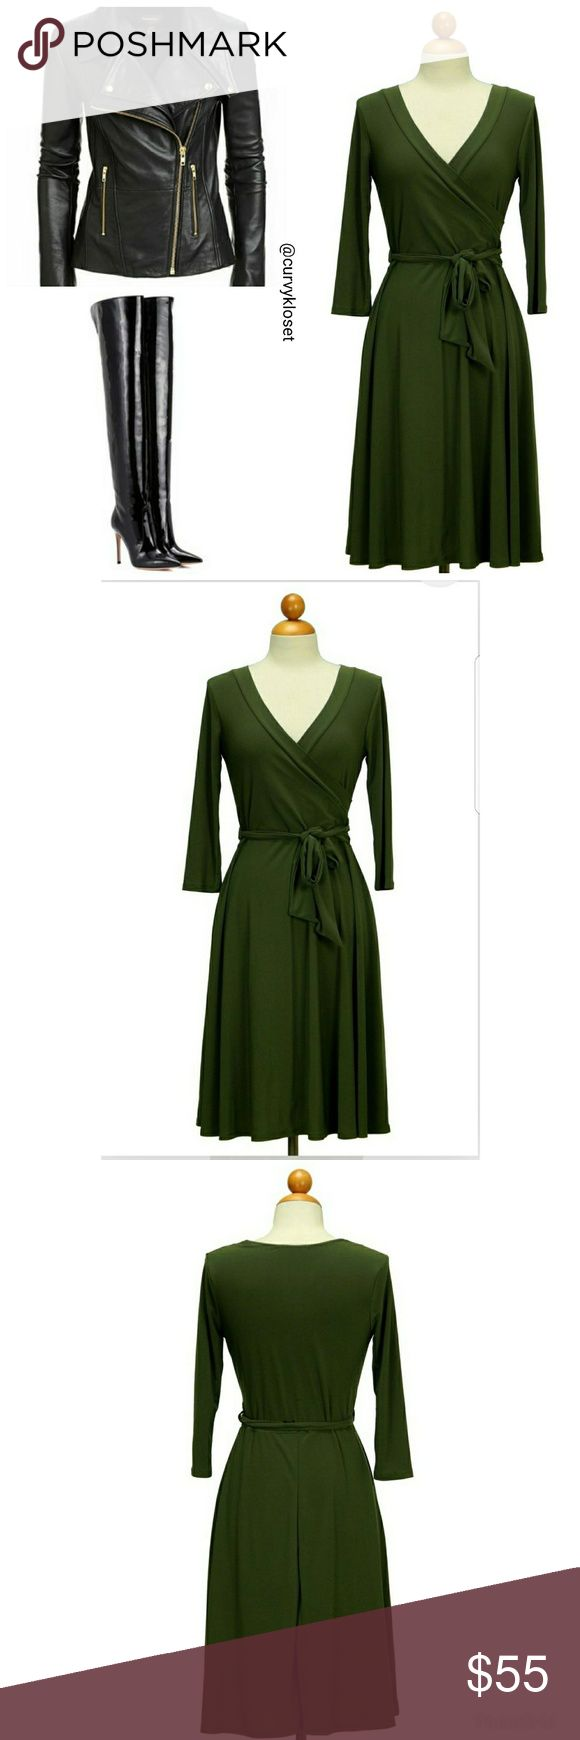 Olive Green Maxi Wrap Dress NWOT This easy stretch wrap dress is perfect for any occasion. Dress up or down for work and dinner!  3/4 length sleeve  95% polyester, 5% spandex.  Length: 39 inches from shoulder to hem Dresses Maxi